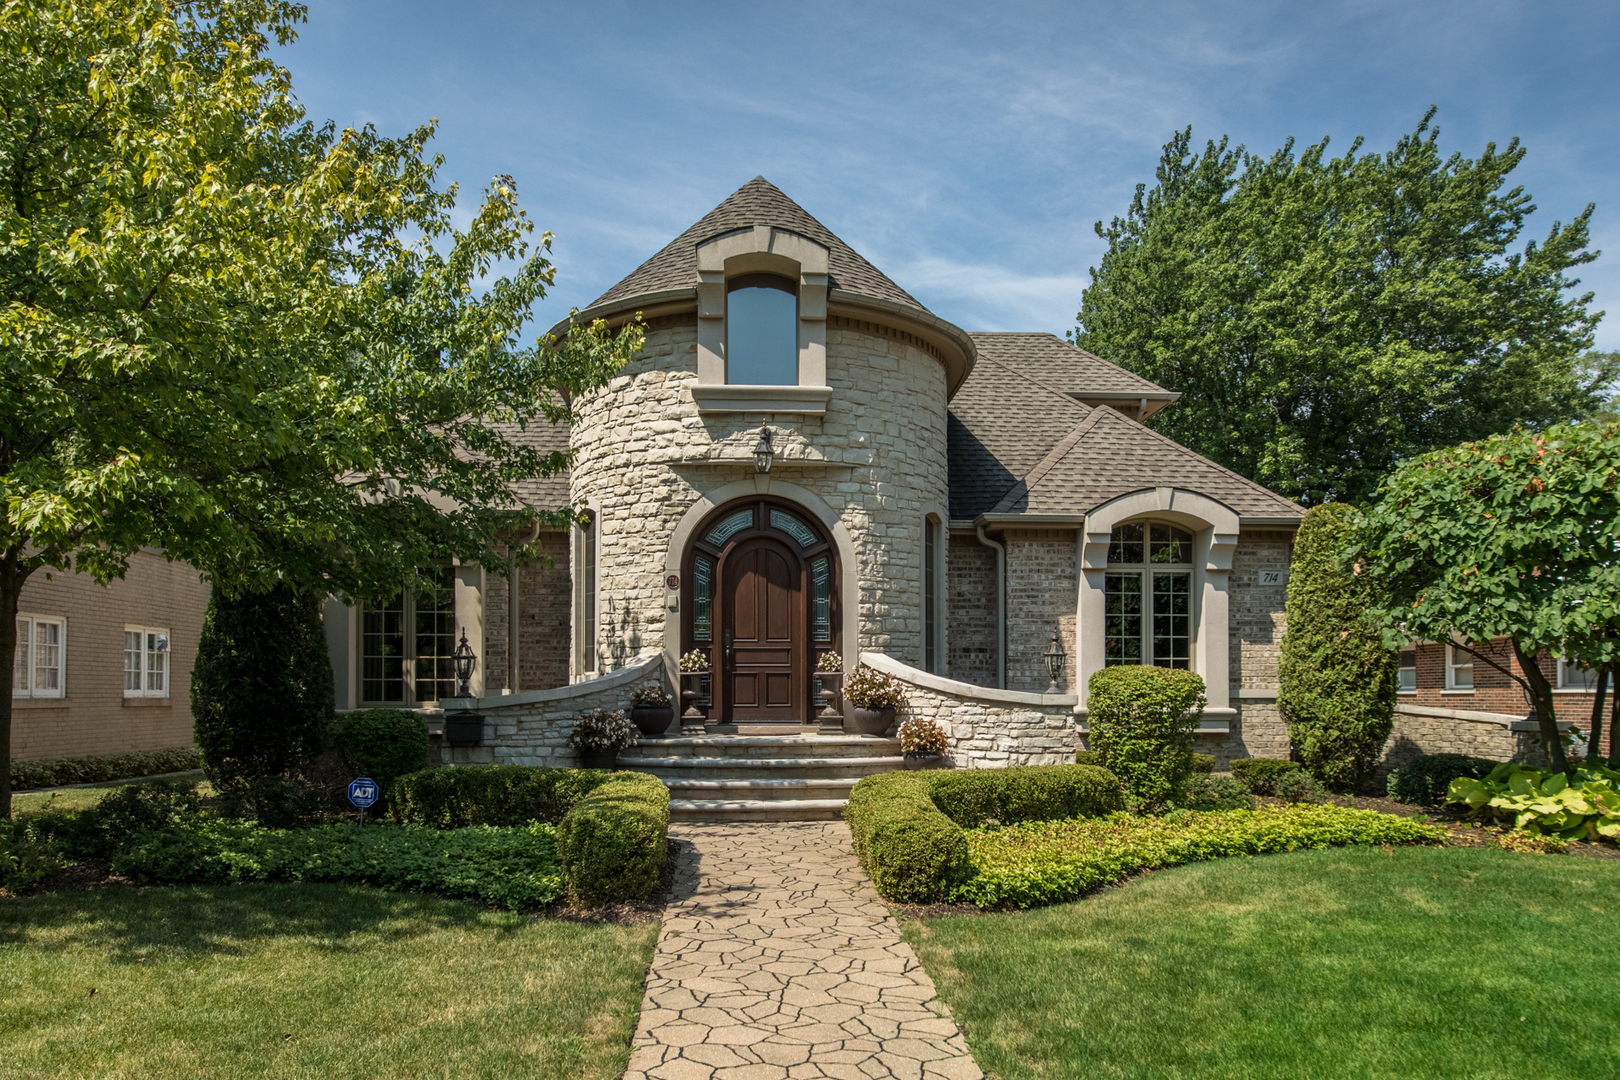 714 South Clifton Avenue Park Ridge, IL 60068